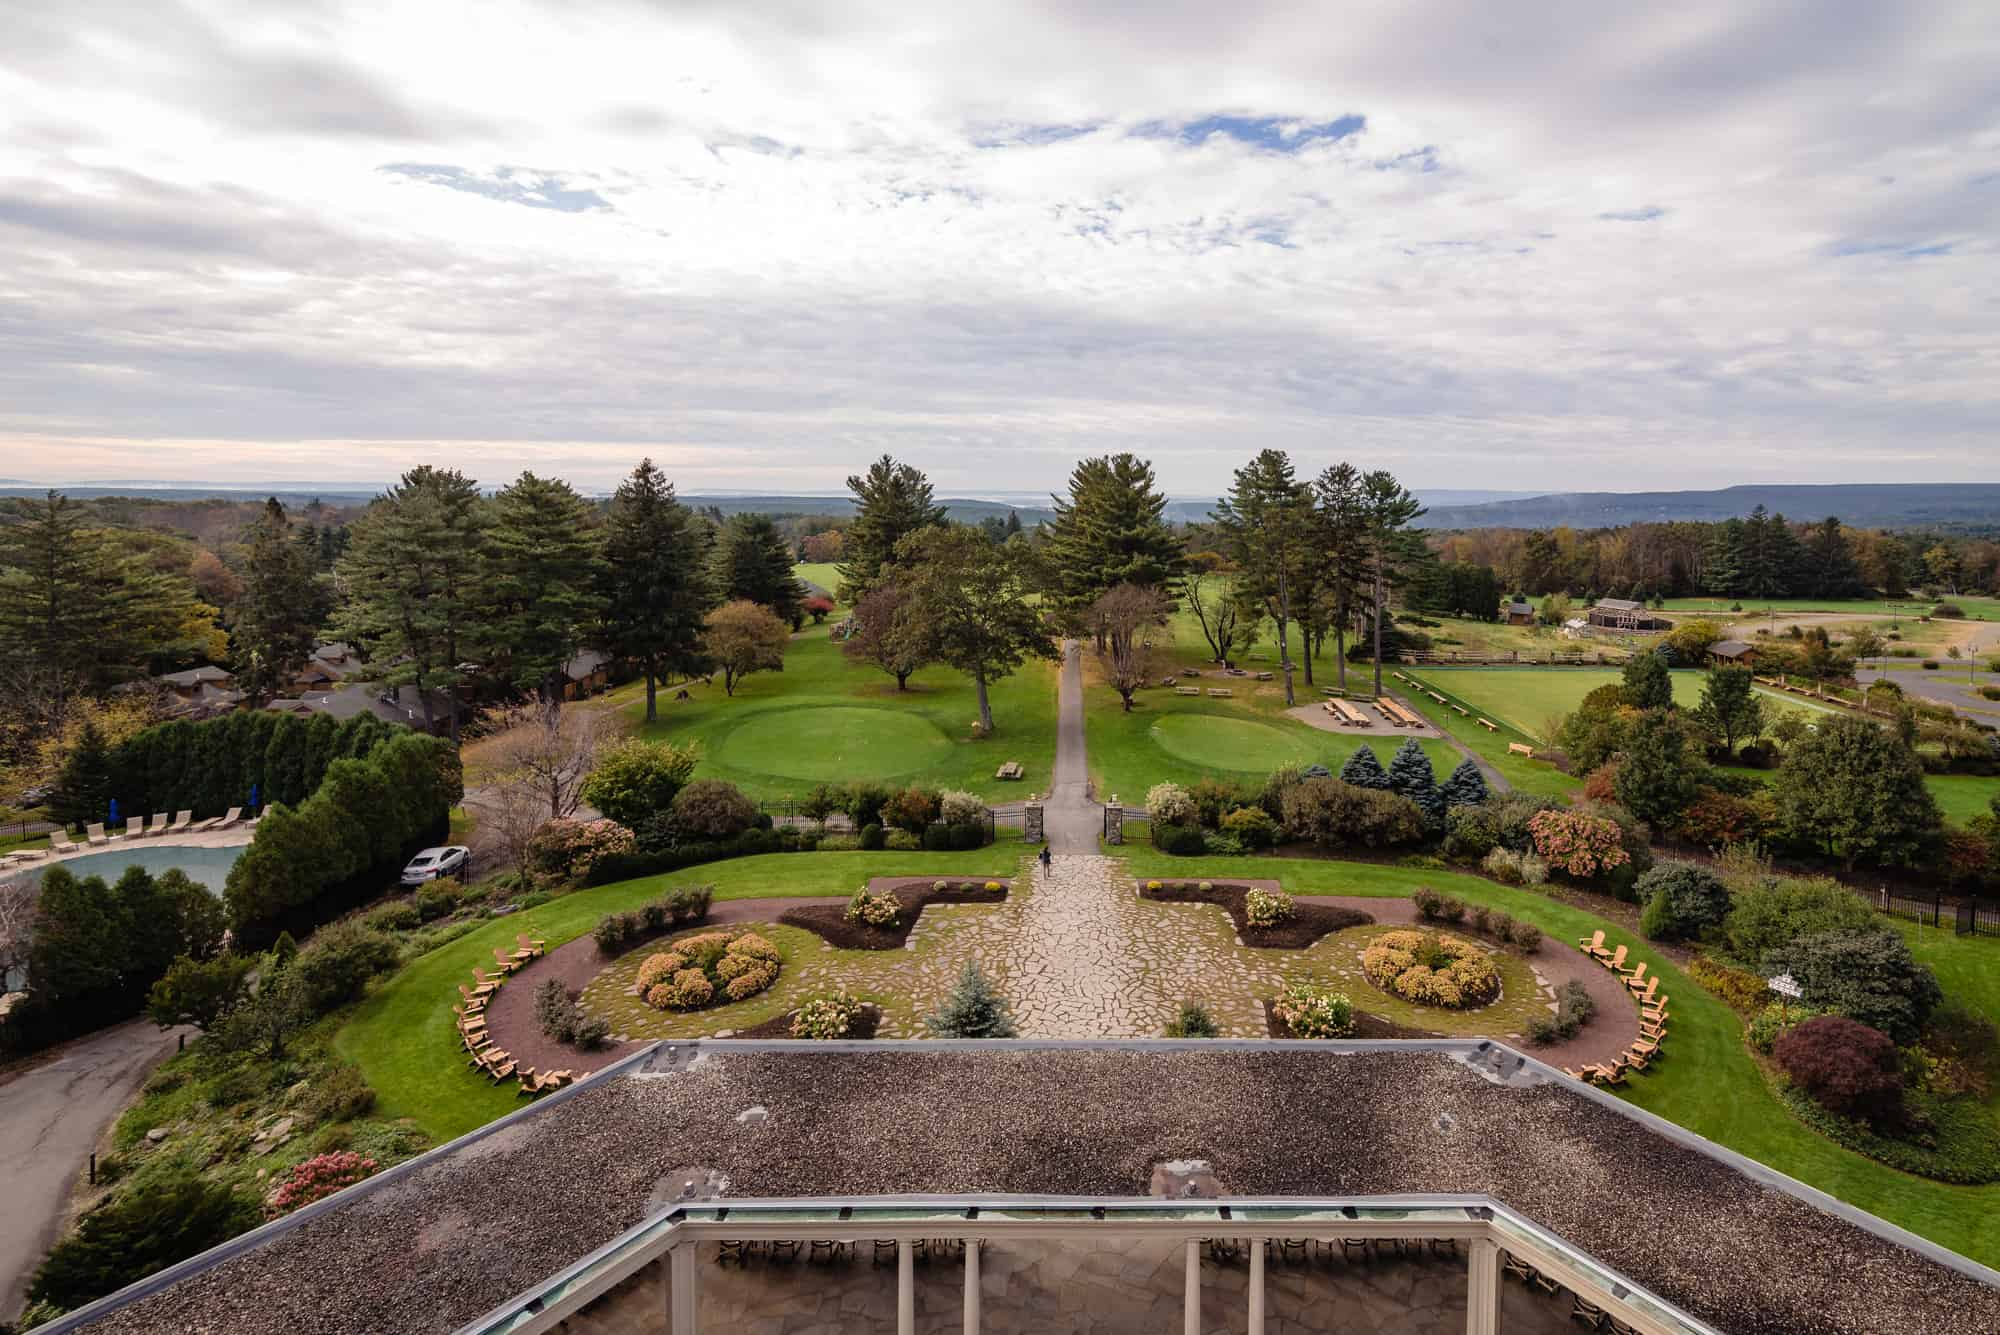 Image of the grounds of Skytop Lodge October 2018